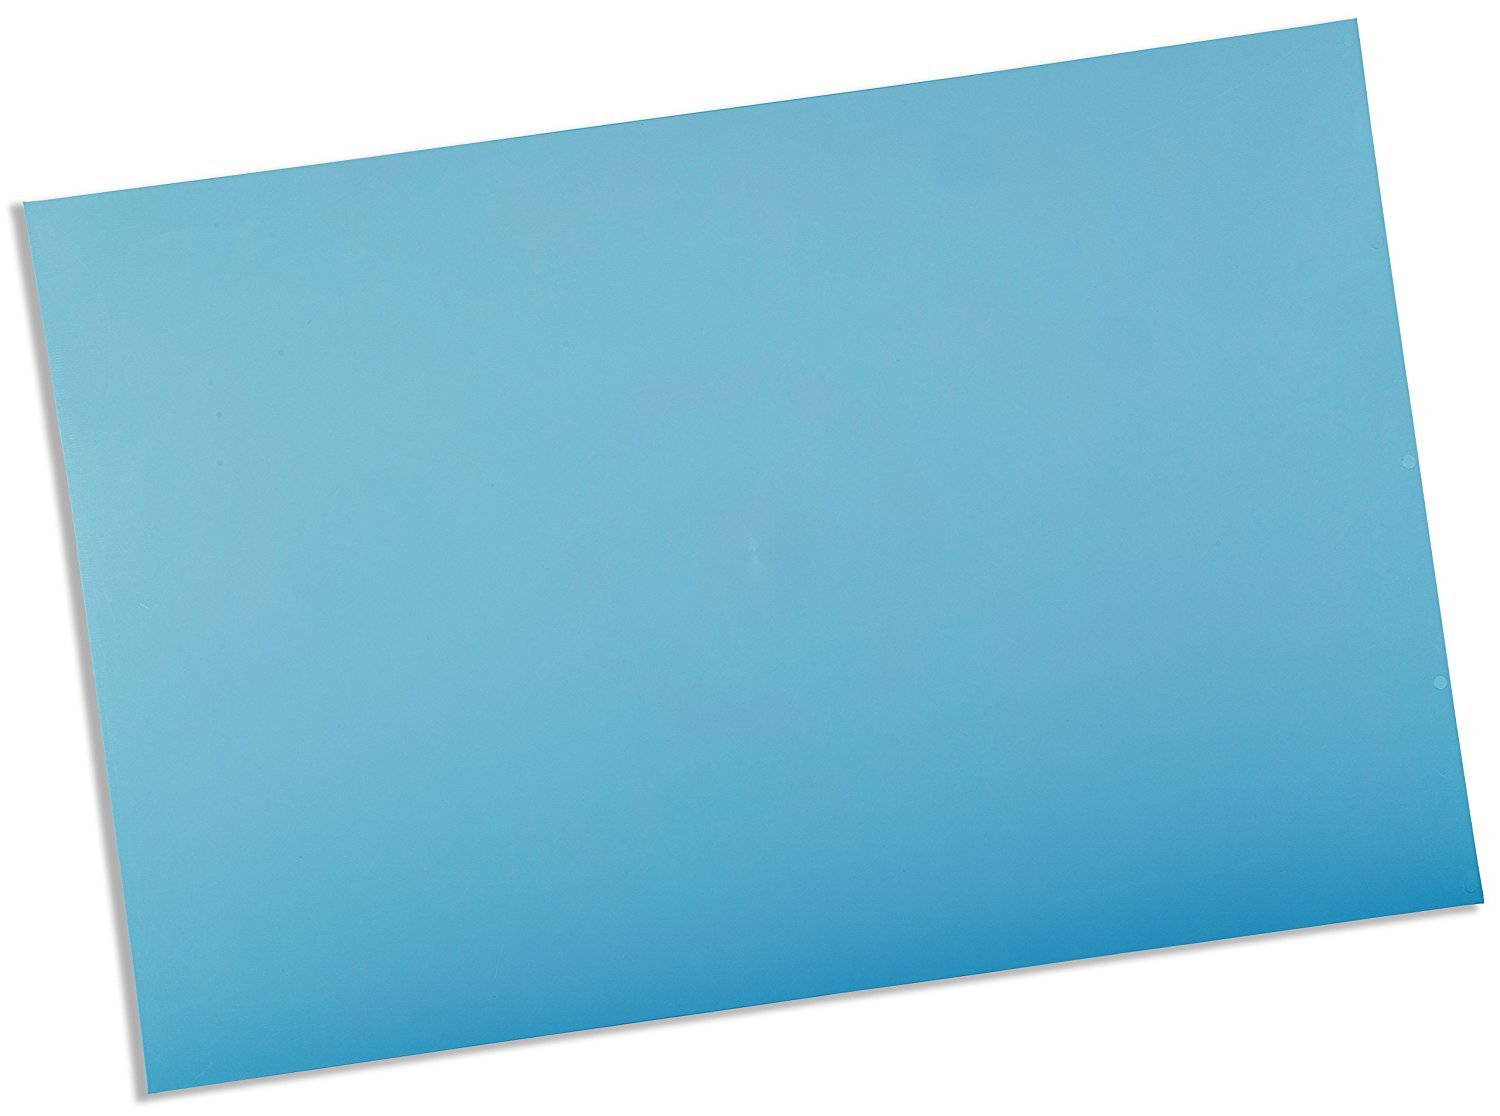 Rolyan Splinting Material Sheet, Ezeform, Blue, 1/8'' x 18'' x 24'', Solid, Single Sheet